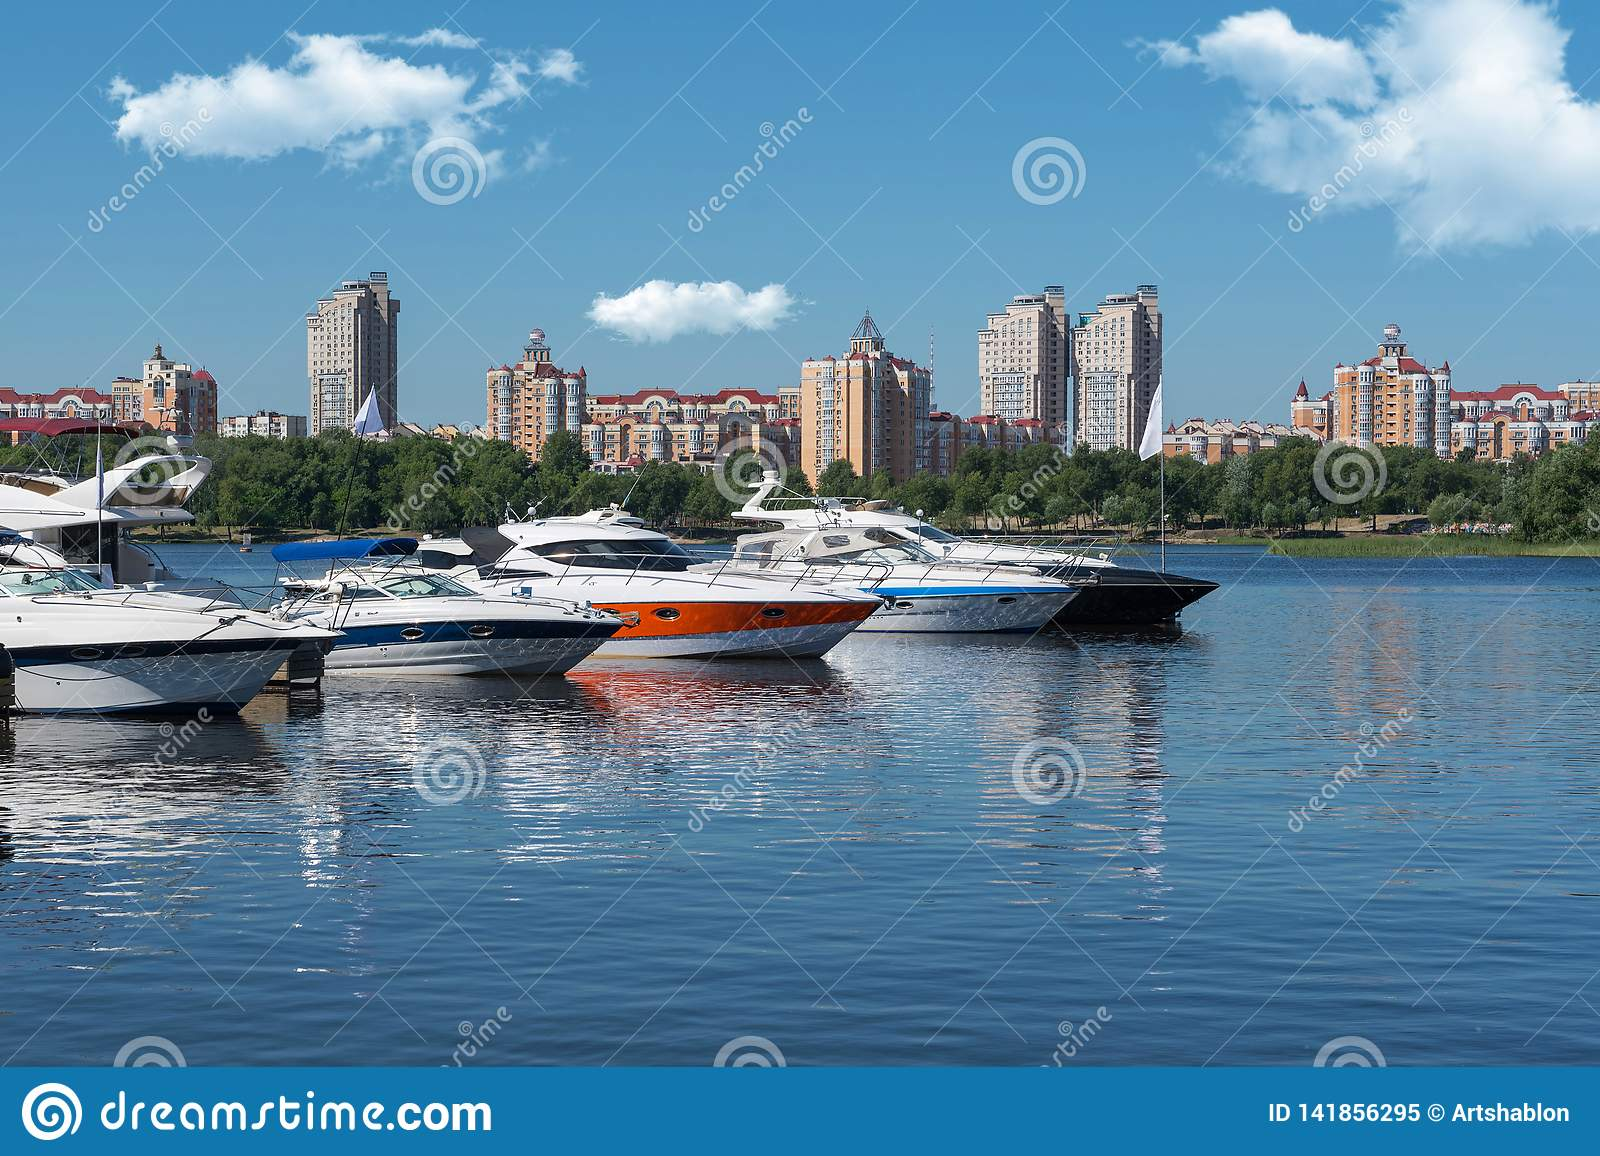 Kiev, Ukraine - June 01, 2018 : White yachts in the port, against the backdrop of the city. Yachts docked in river port